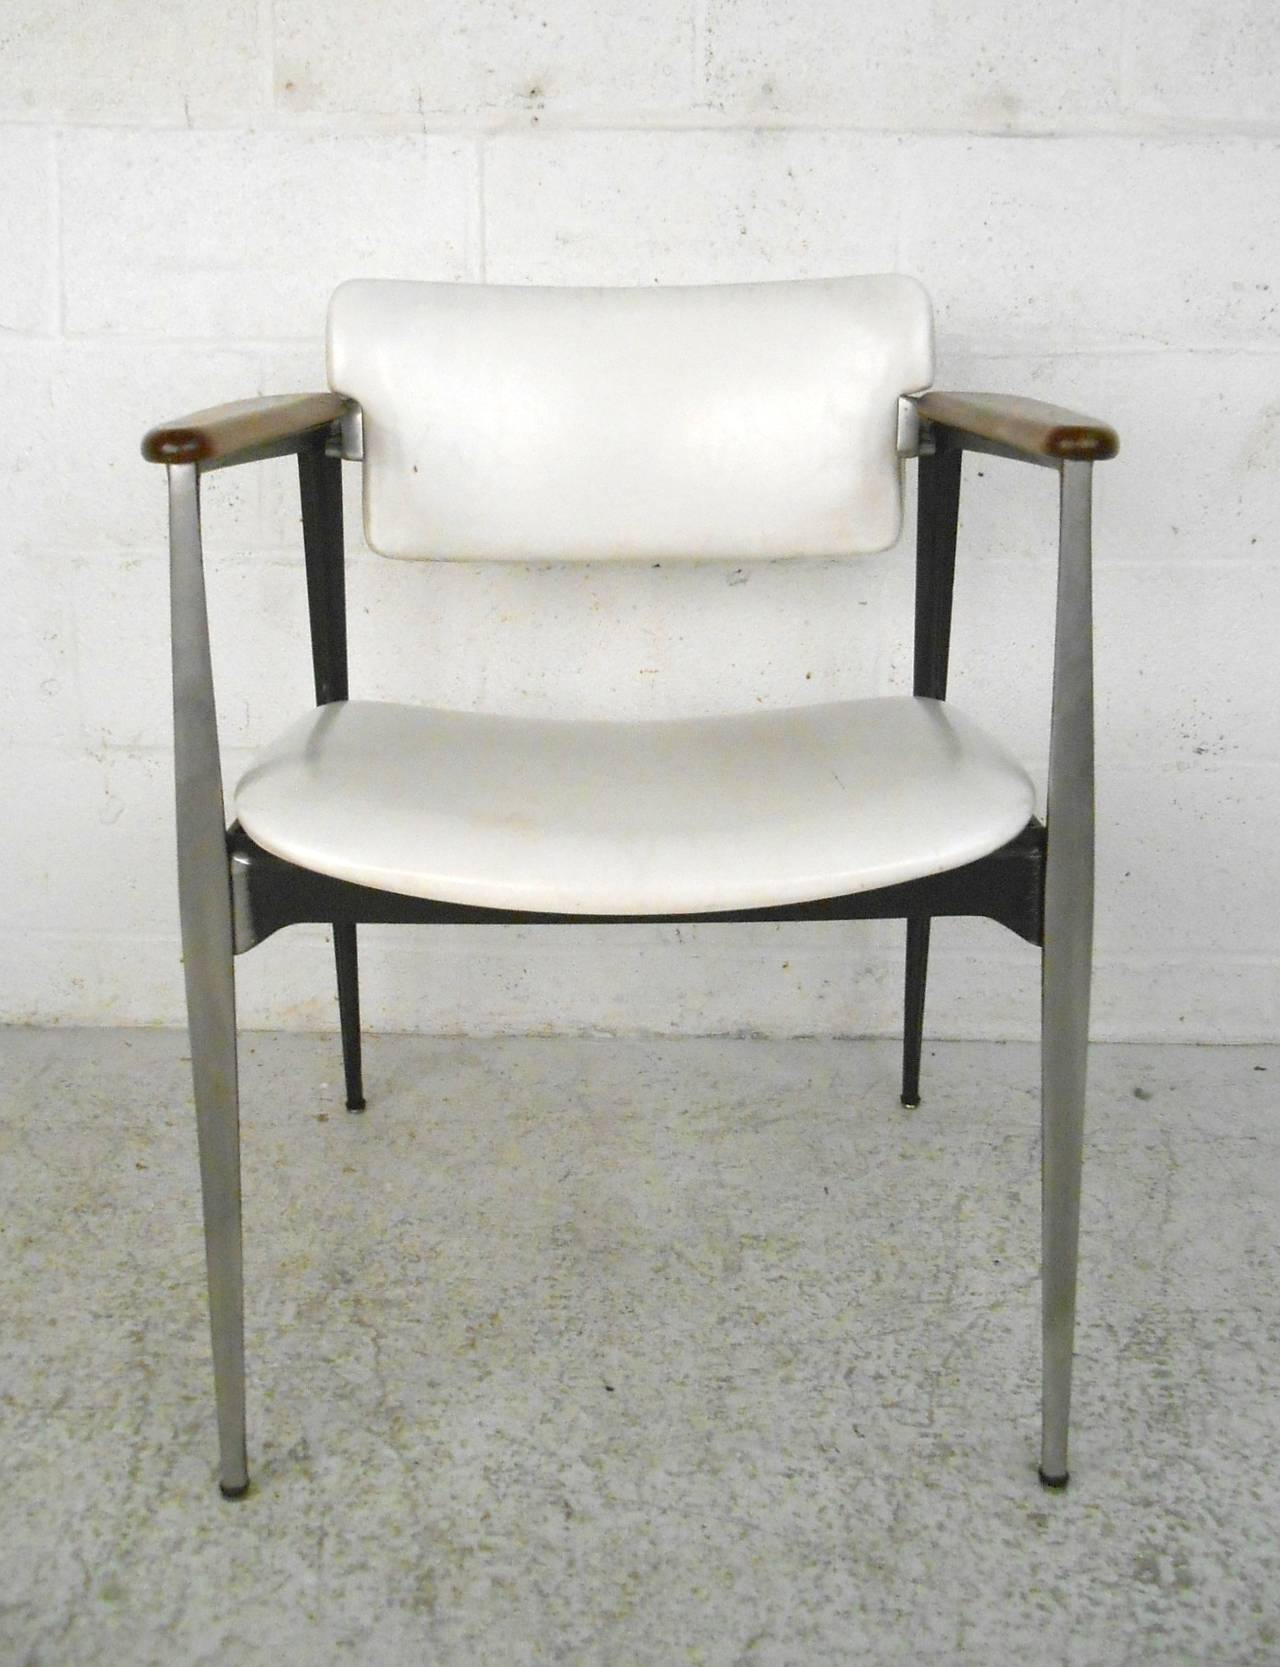 shelby williams chairs ikea bed chair 39gazelle 39 by crucible products at